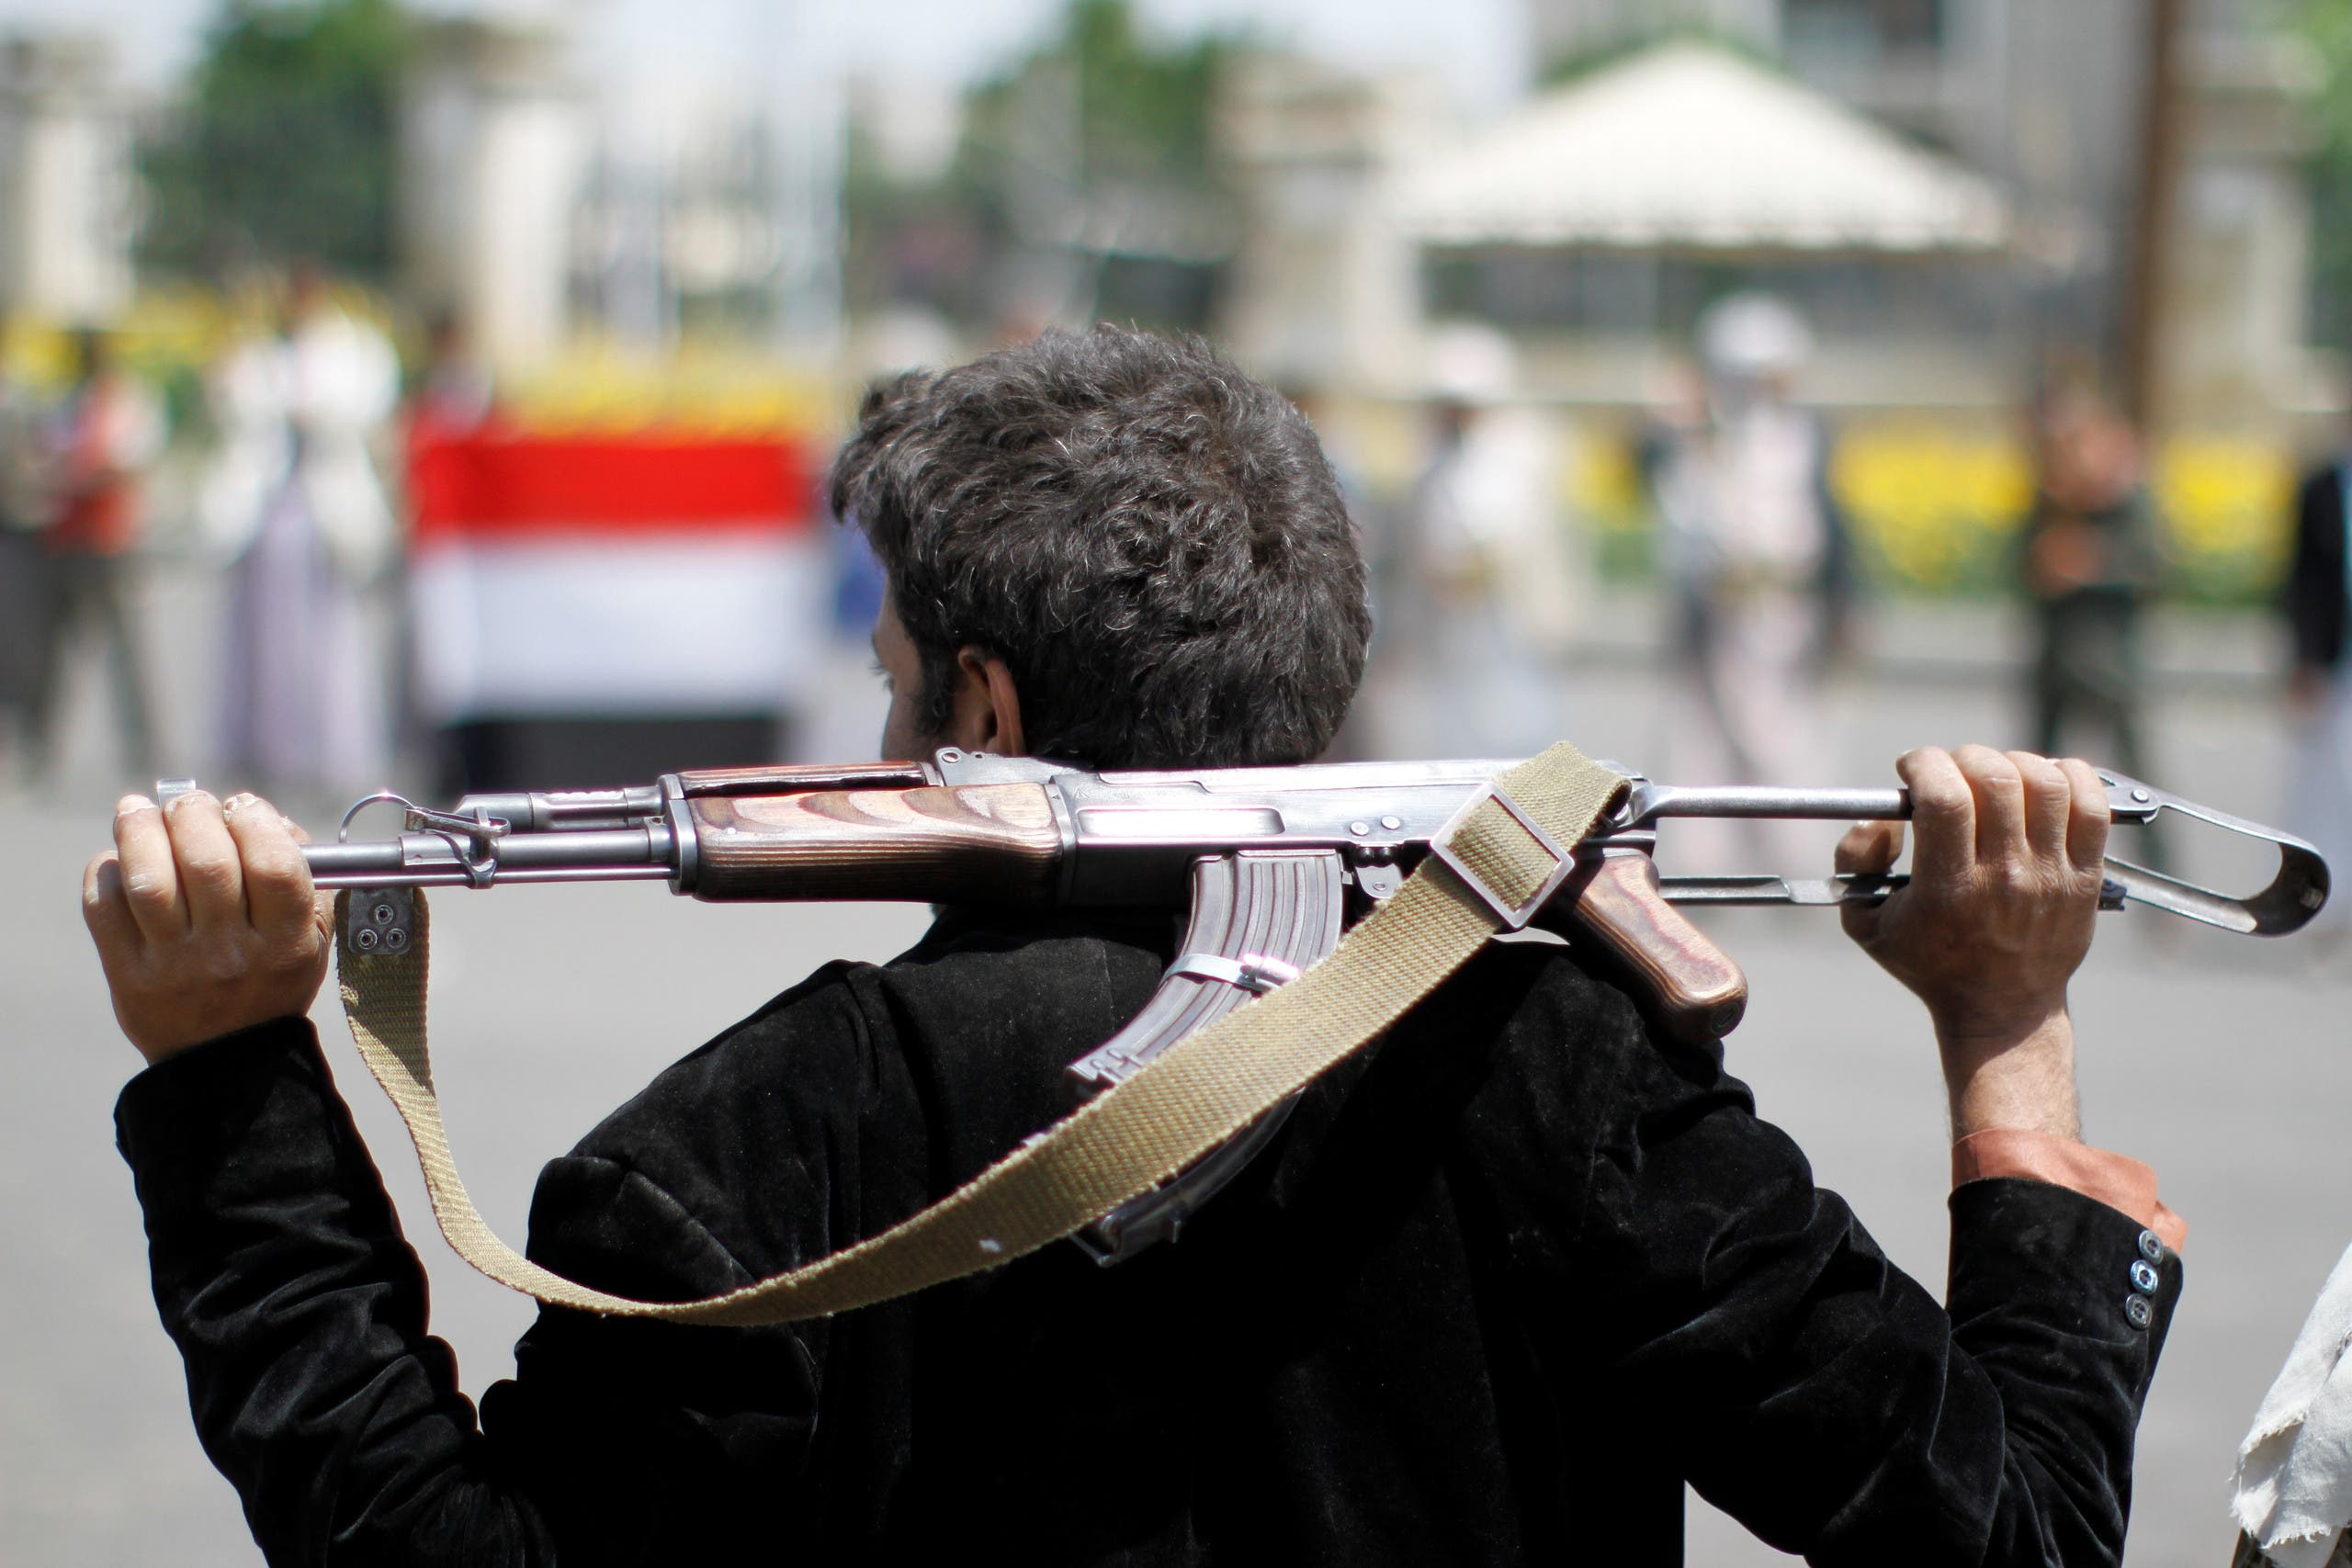 An armed man loyal to the Houthi movement holds his weapon as he gathers to protest against the Saudi-backed exiled government deciding to cut off the Yemeni central bank from the outside world, in the capital Sanaa, Yemen August 25, 2016. REUTERS/